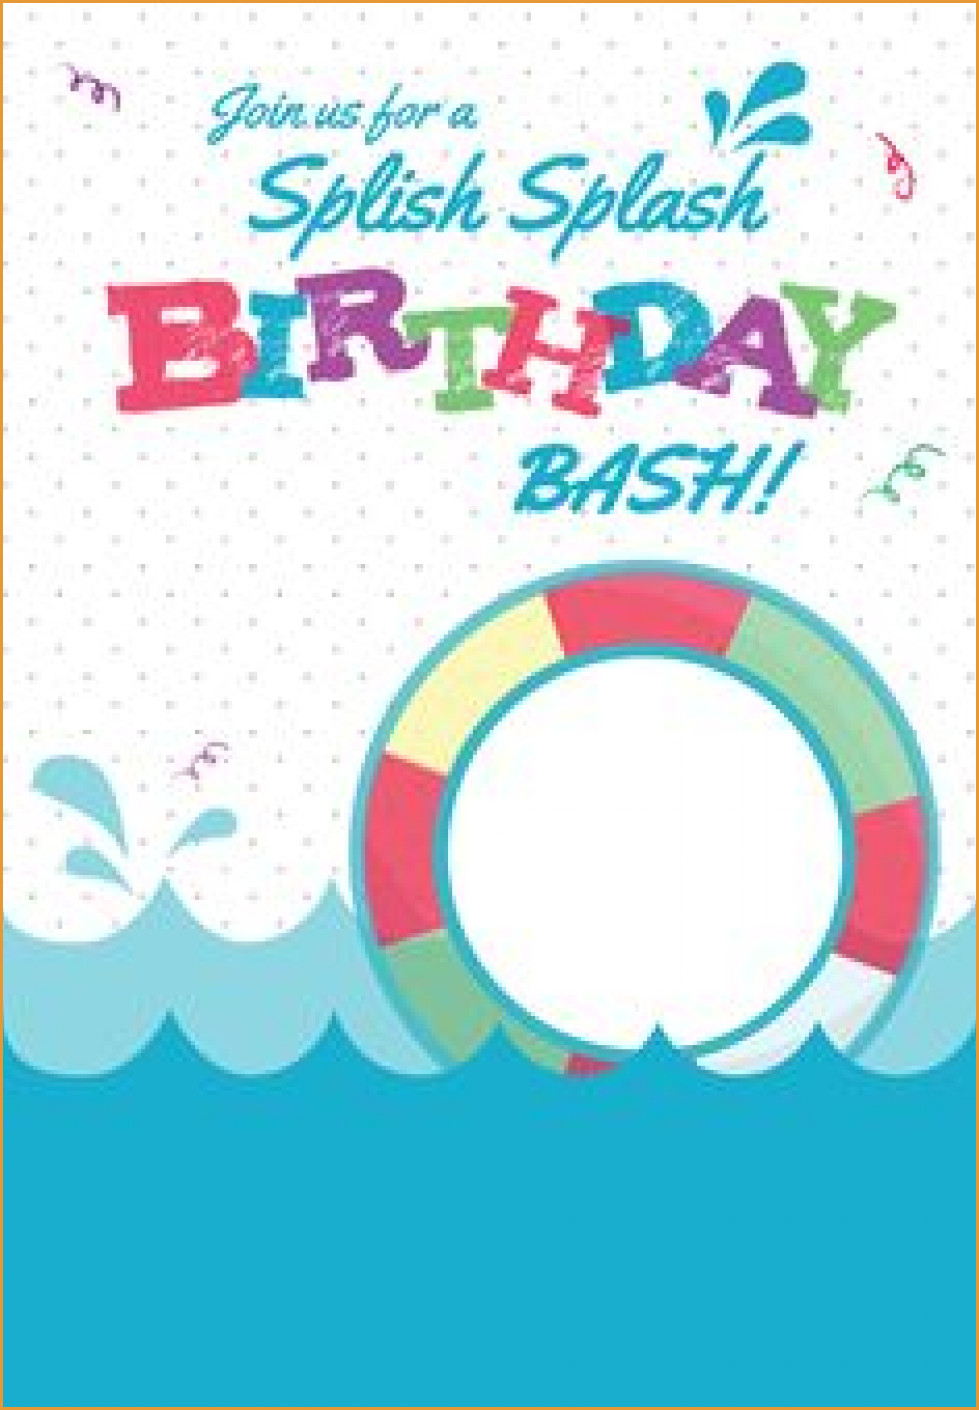 Party Invitations: Latest Free Printable Pool Party Invitations - Free Printable Pool Party Invitations